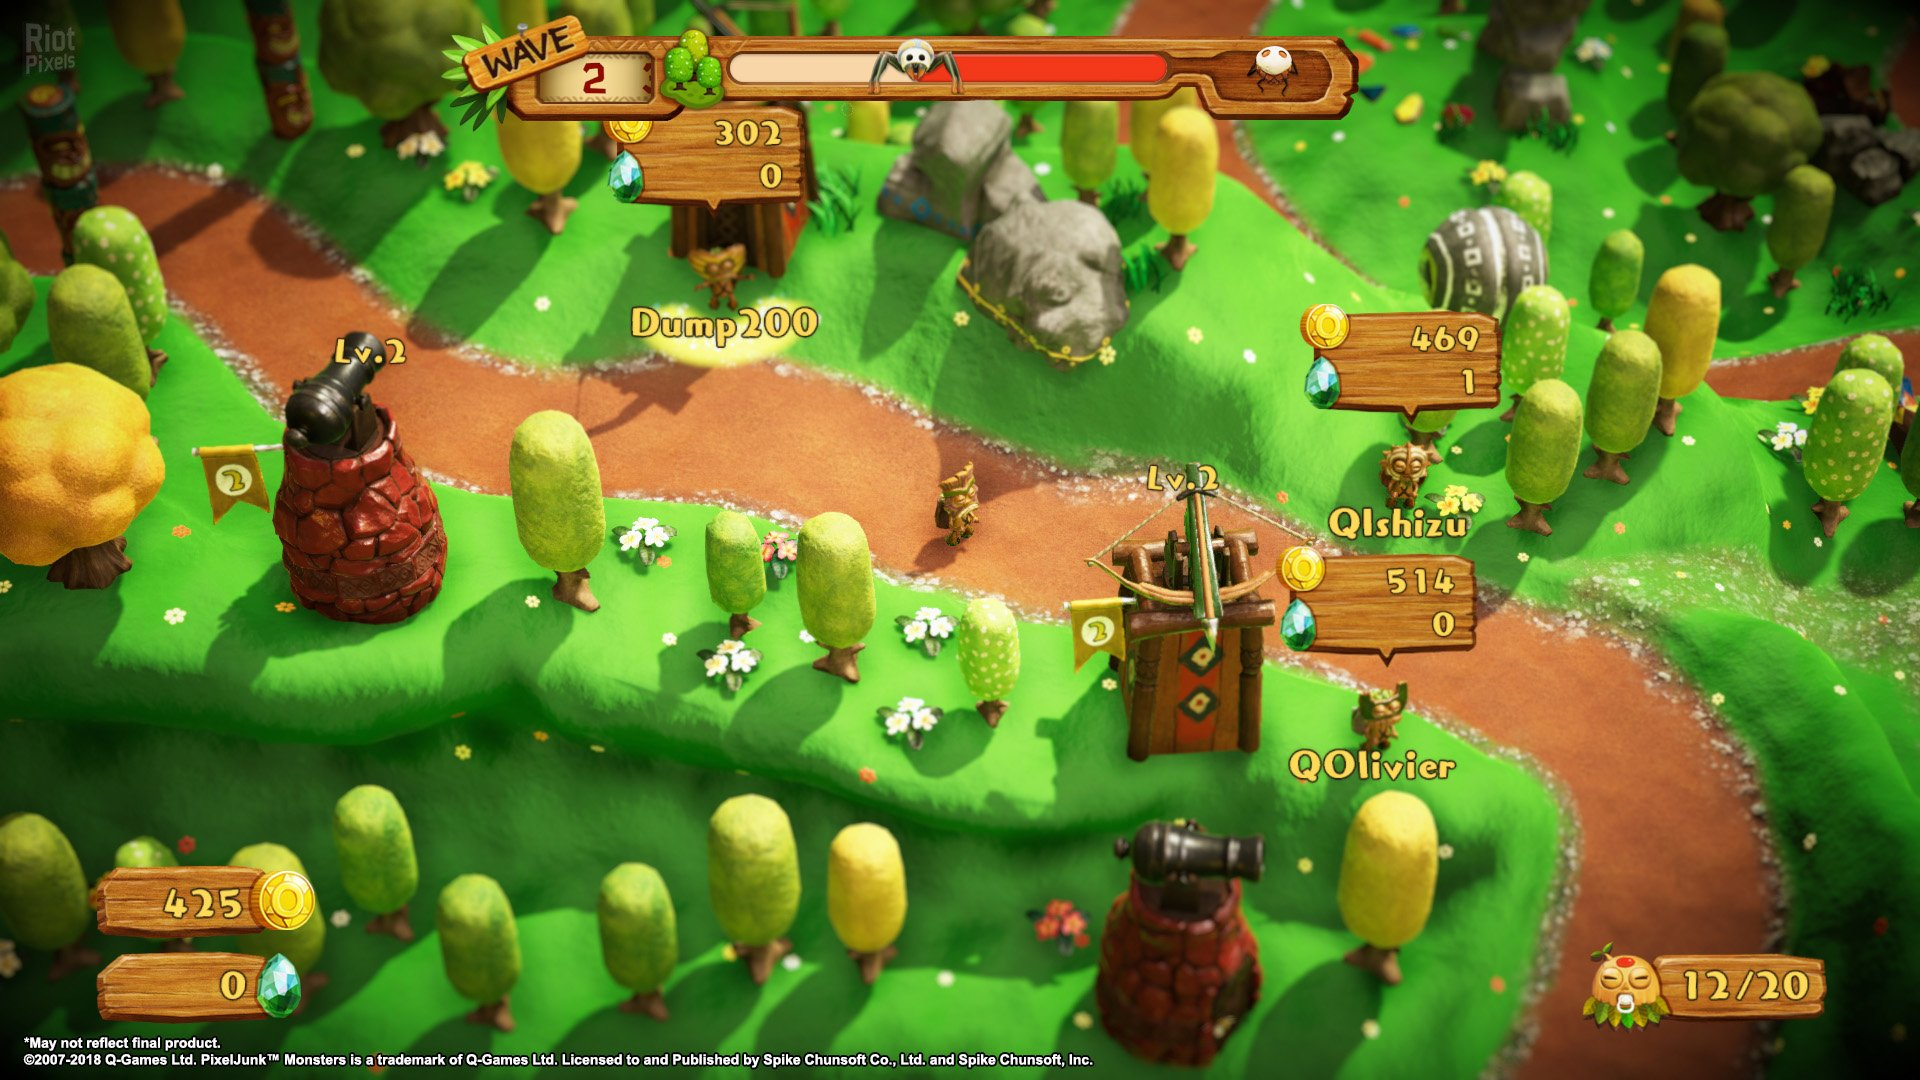 Скриншот 2 к игре PixelJunk Monsters 2 (2018) | Лицензия